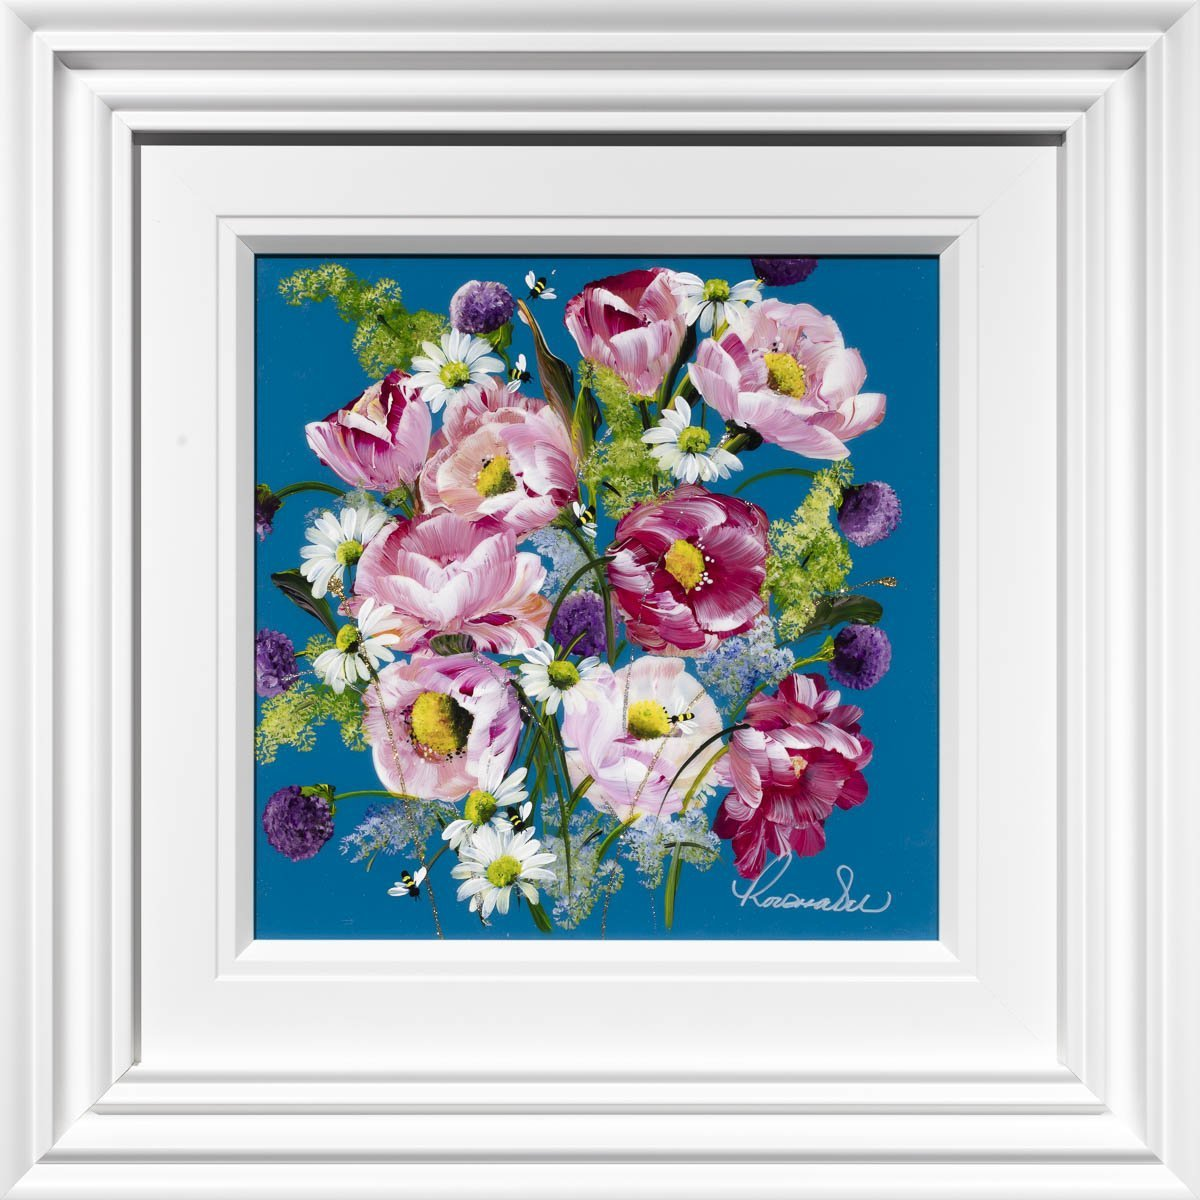 Pink Passion - Original Rozanne Bell Framed